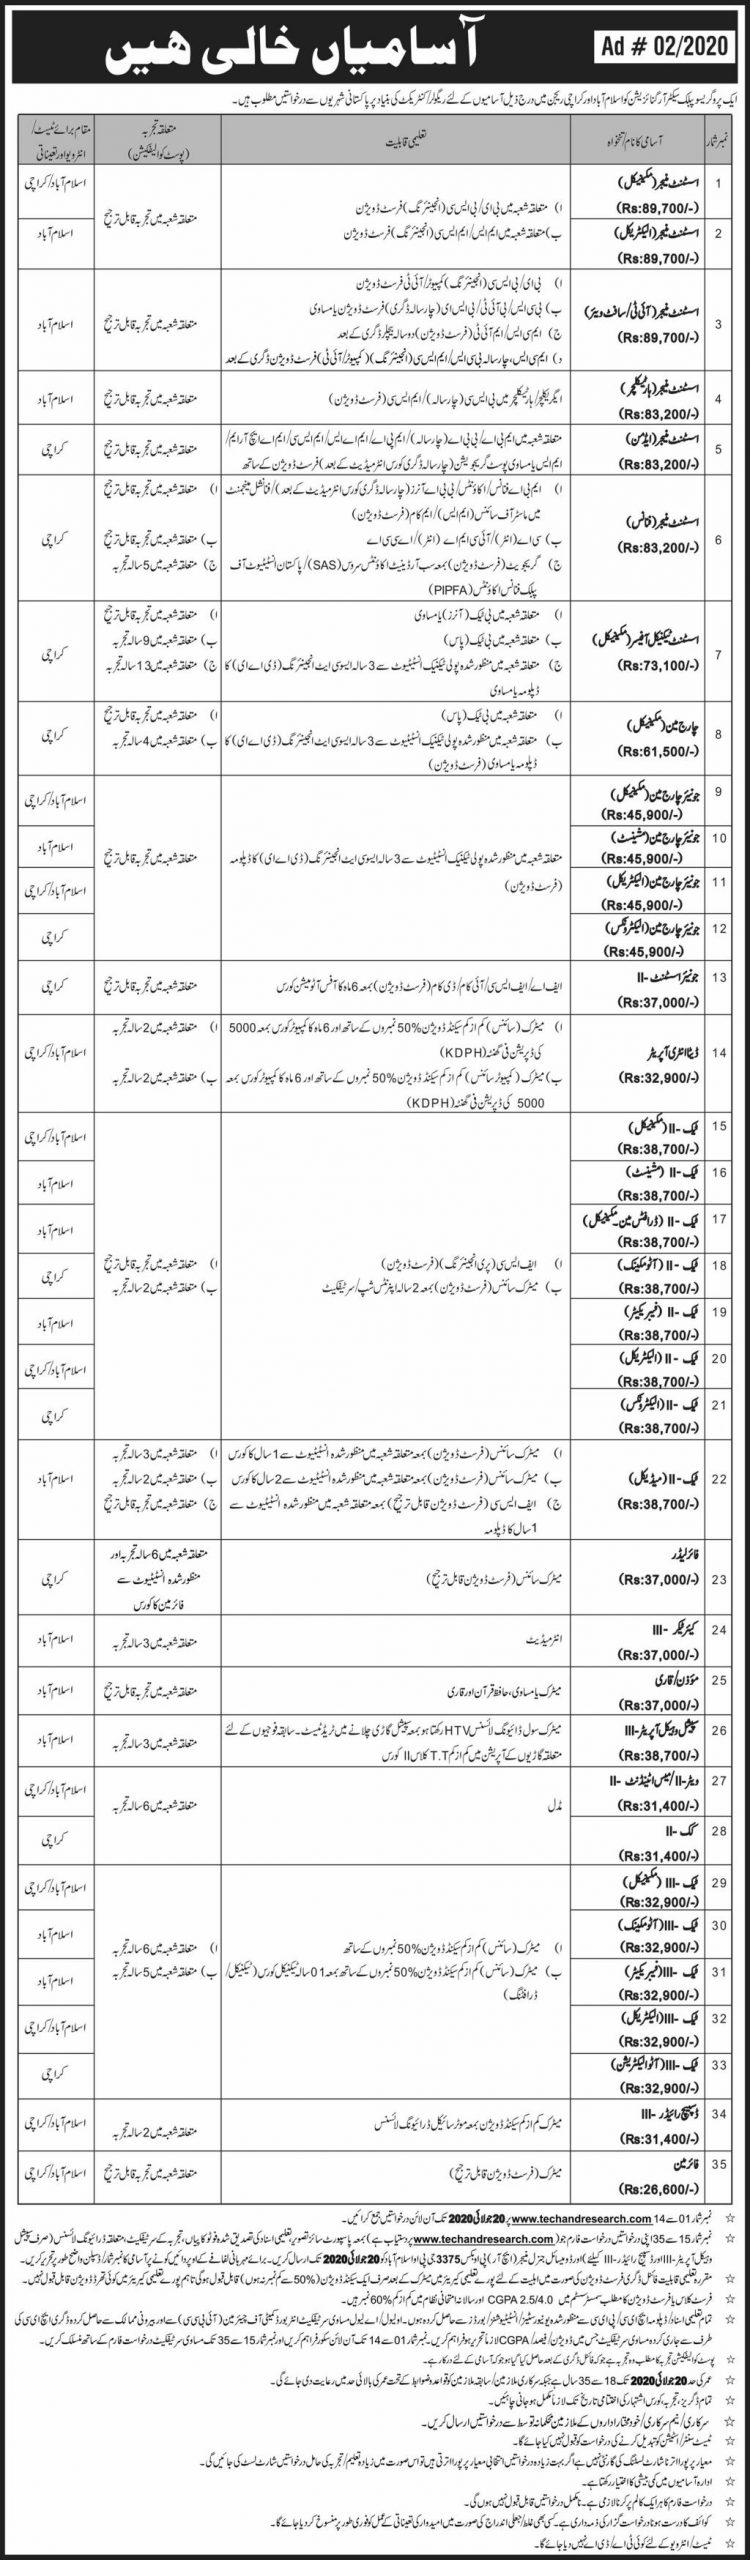 Progressive Public Sector Organization Jobs July 2020